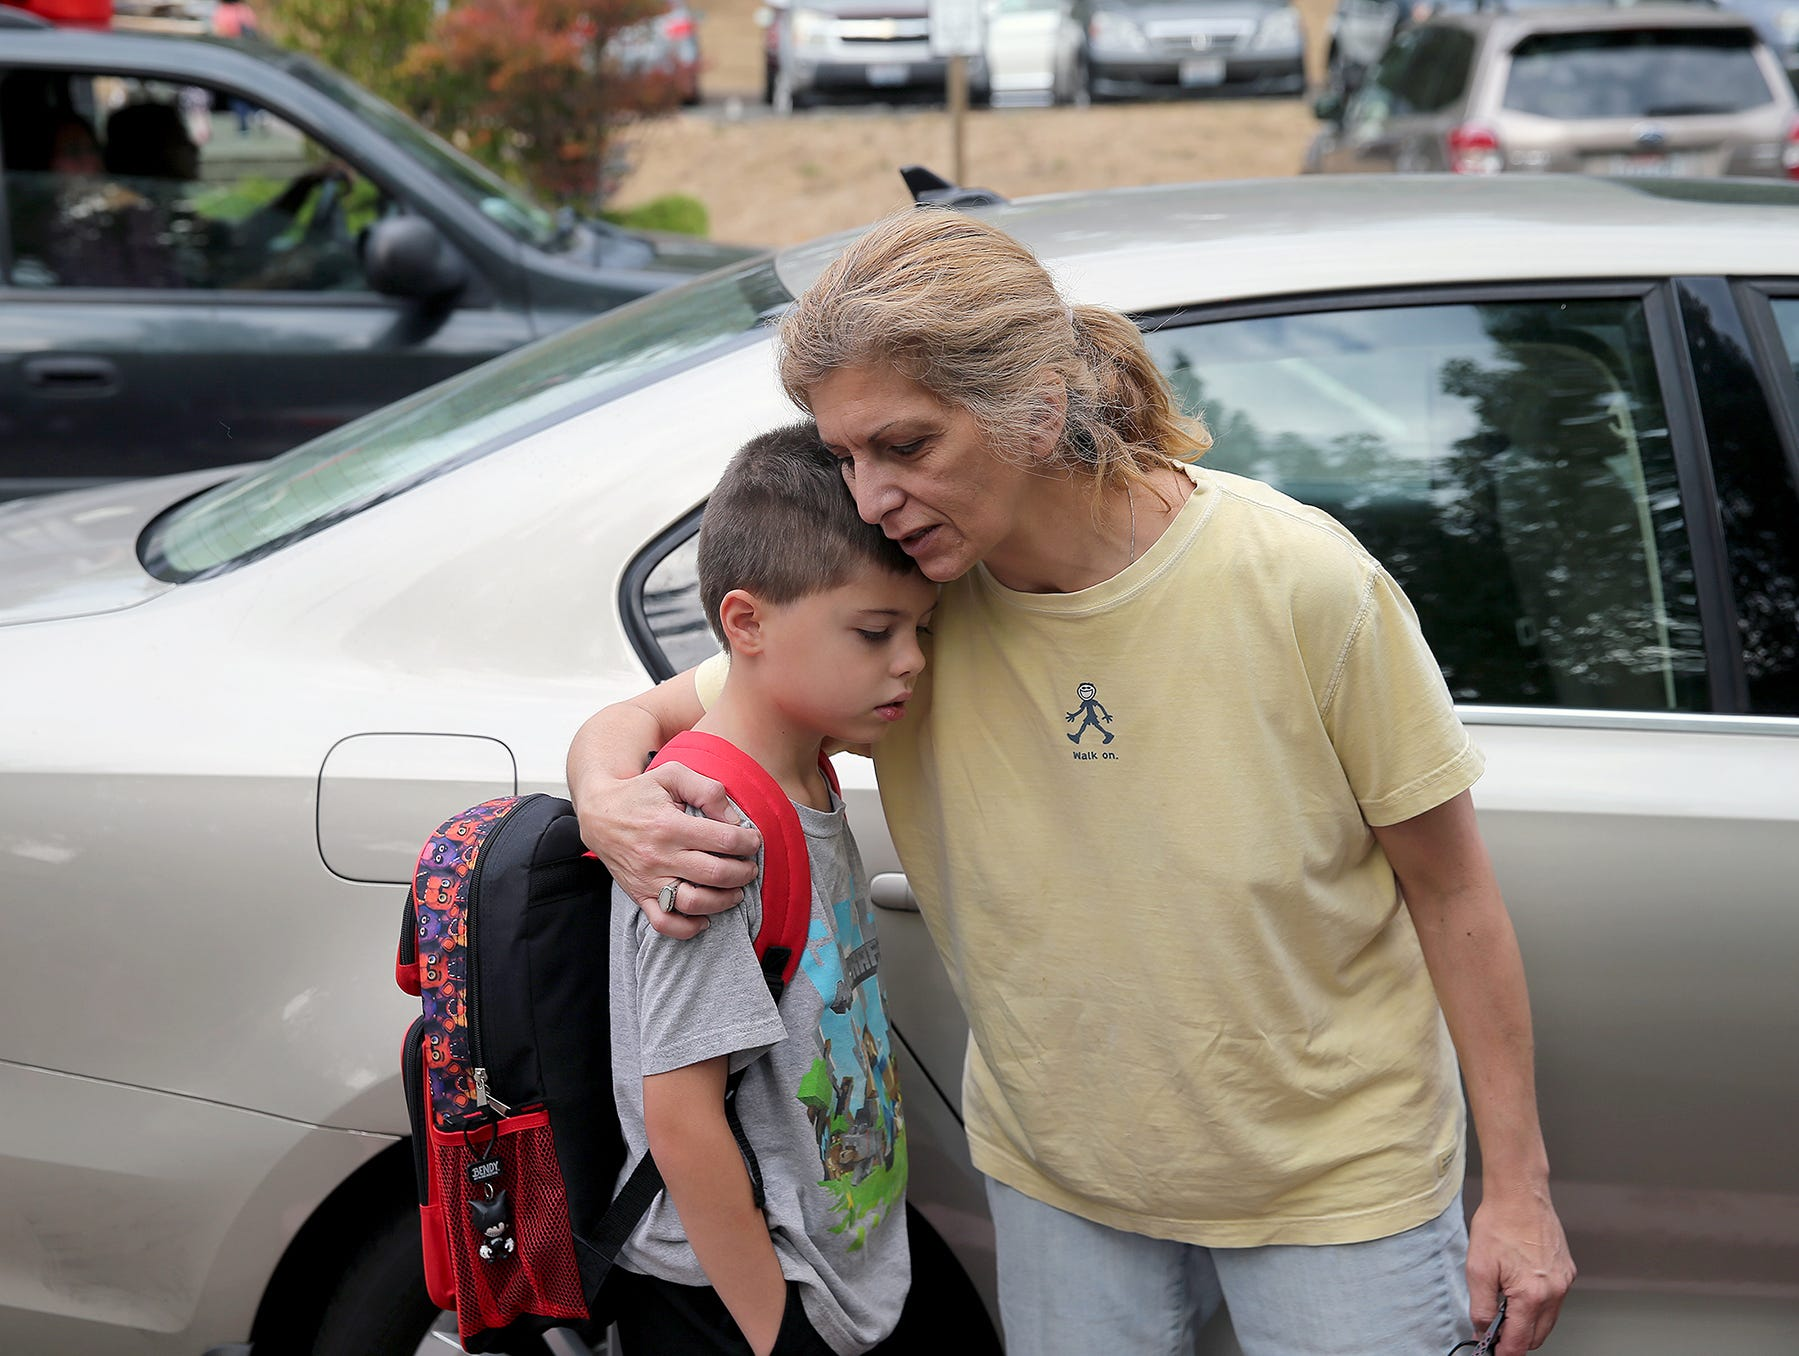 Crosby Egnatios-Schultz, 7, is comforted by his mom, Robyn Egnatios, as she drops the third-grader off for the first day of school at Kitsap Lake Elementary.